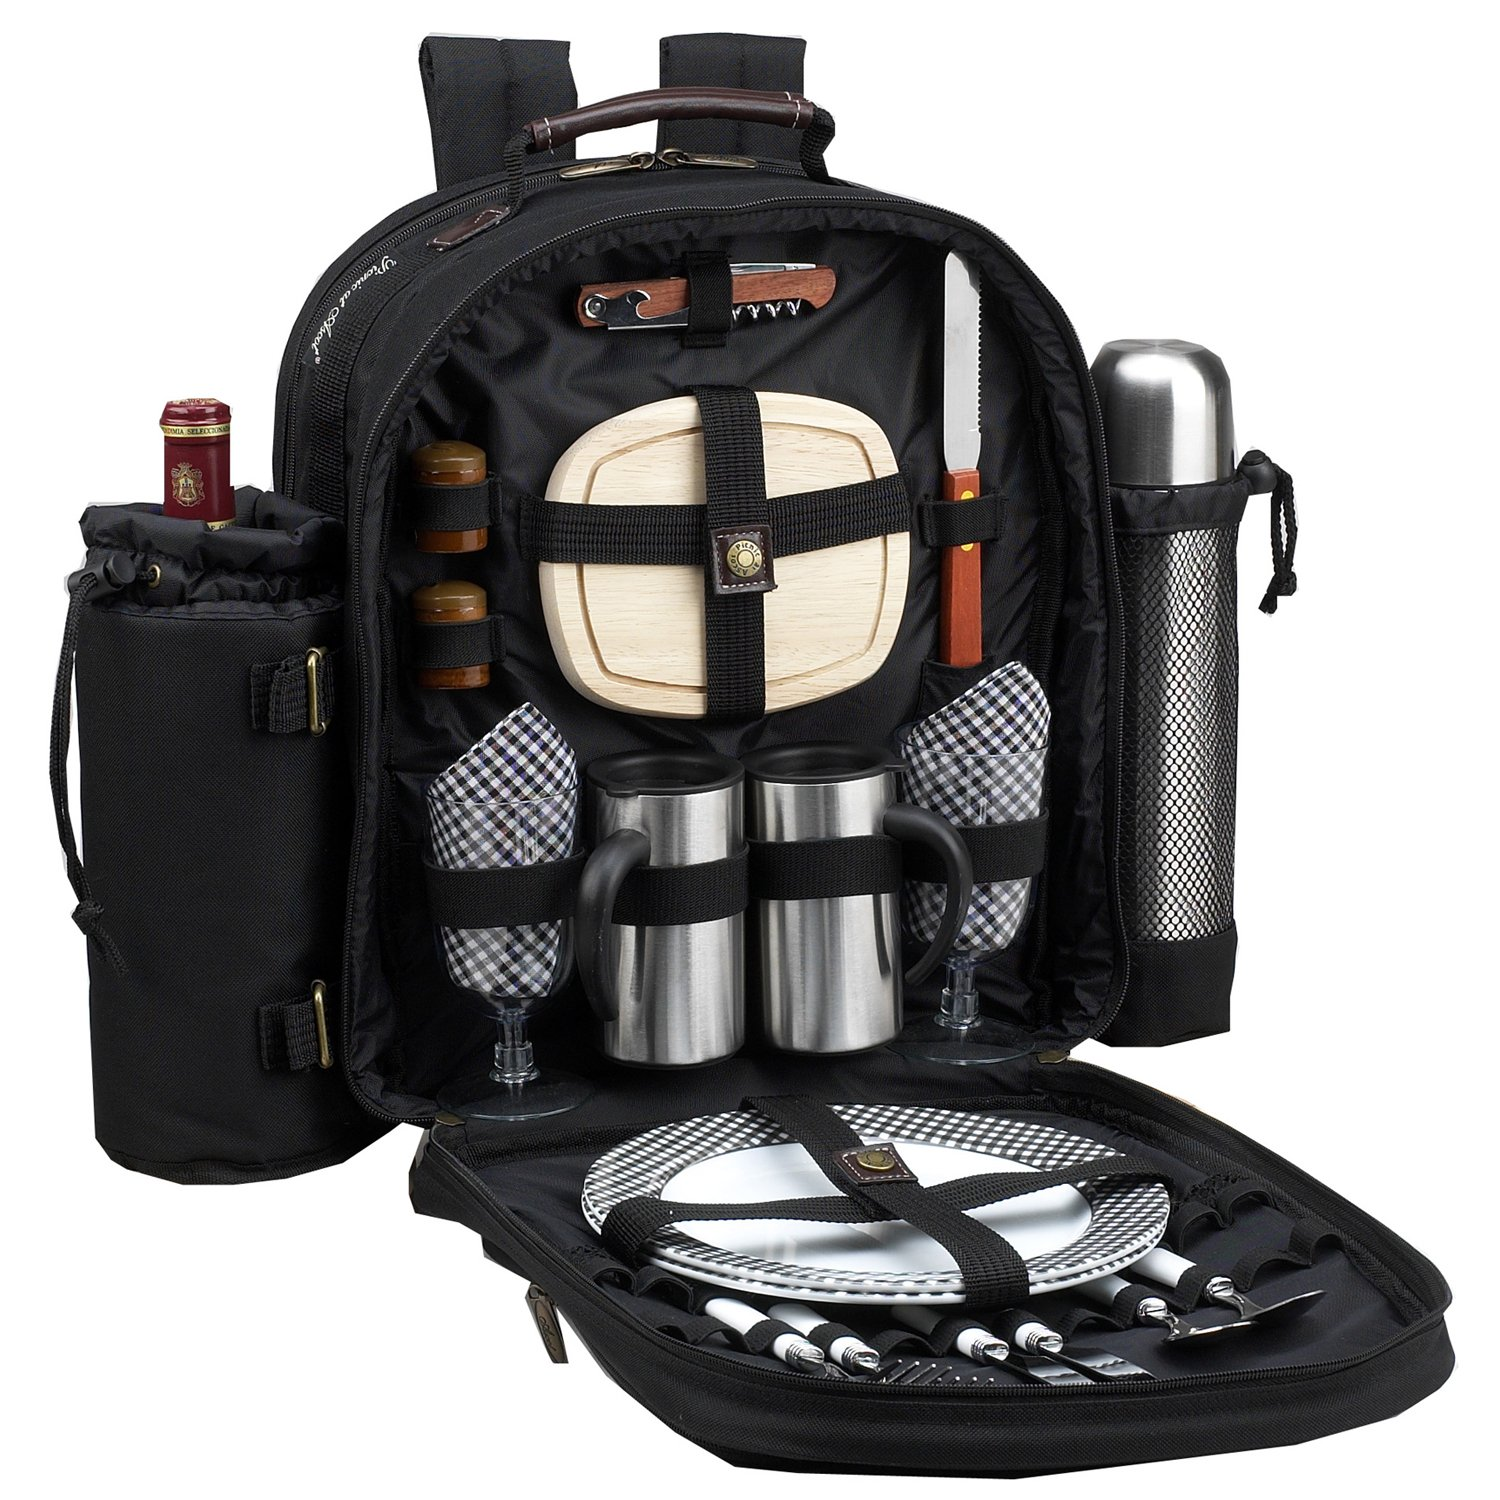 Picnic at Ascot - Deluxe Equipped 2 Person Picnic Backpack with Coffee Service, Cooler & Insulated Wine Holder - Black